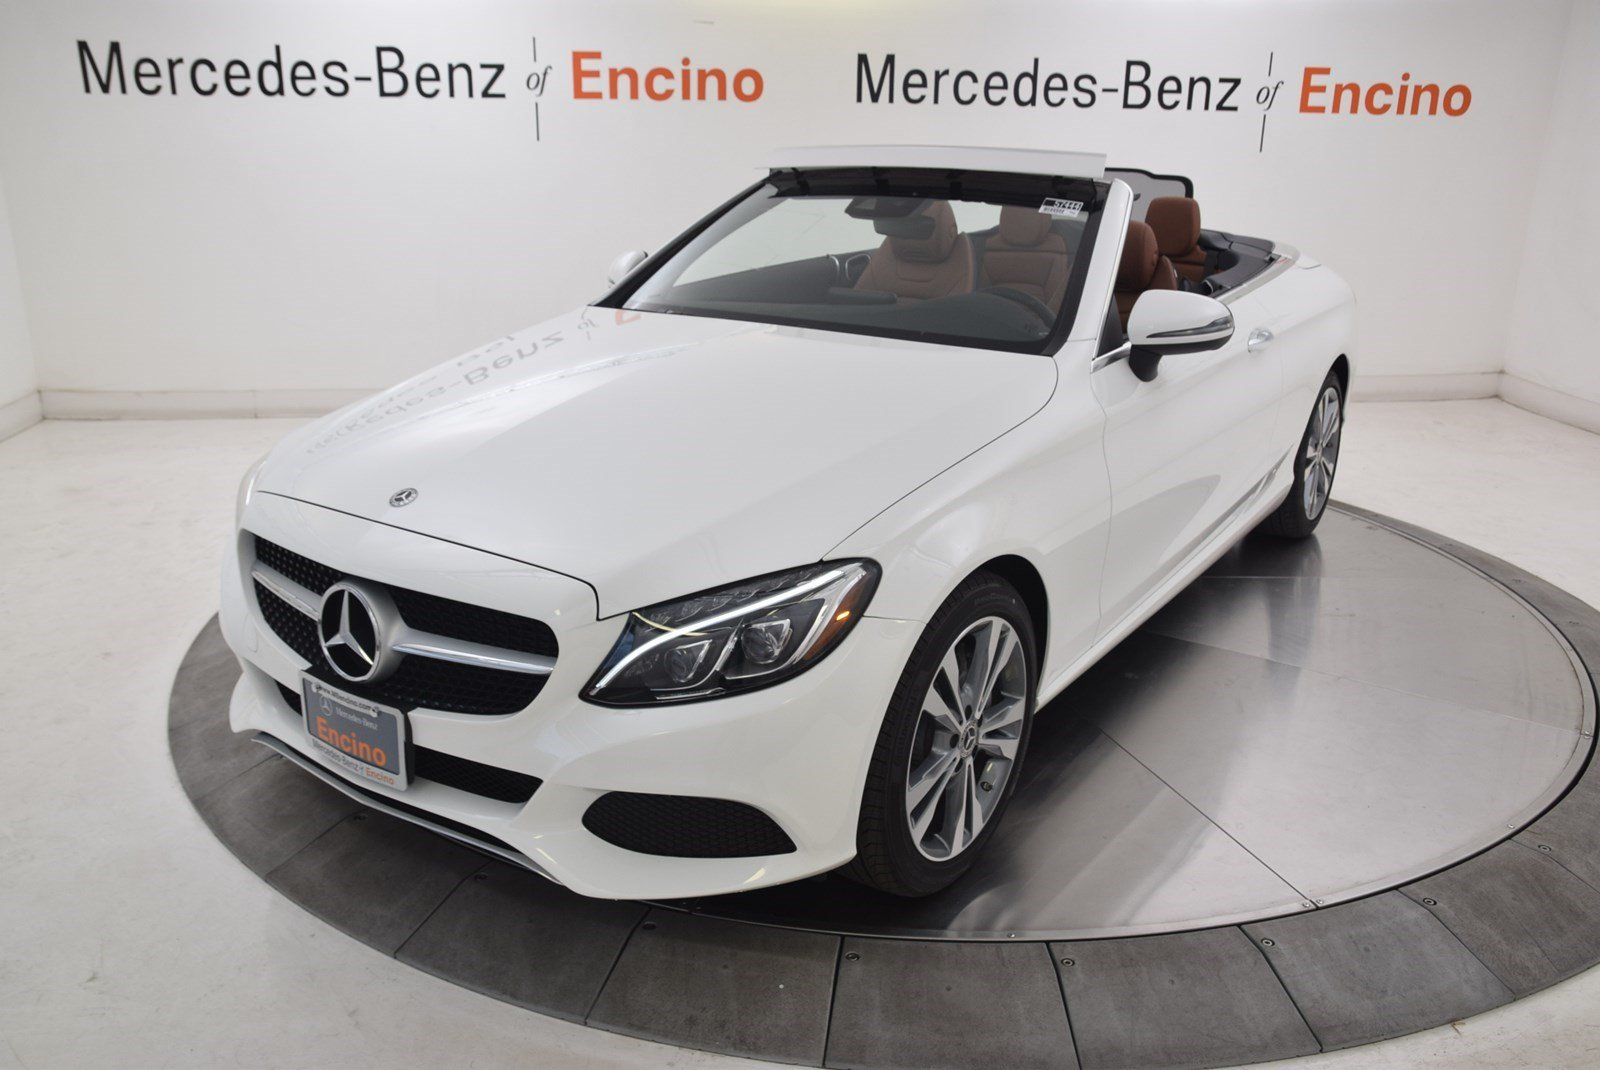 New 2018 Mercedes Benz C Class C 300 CABRIOLET in Encino